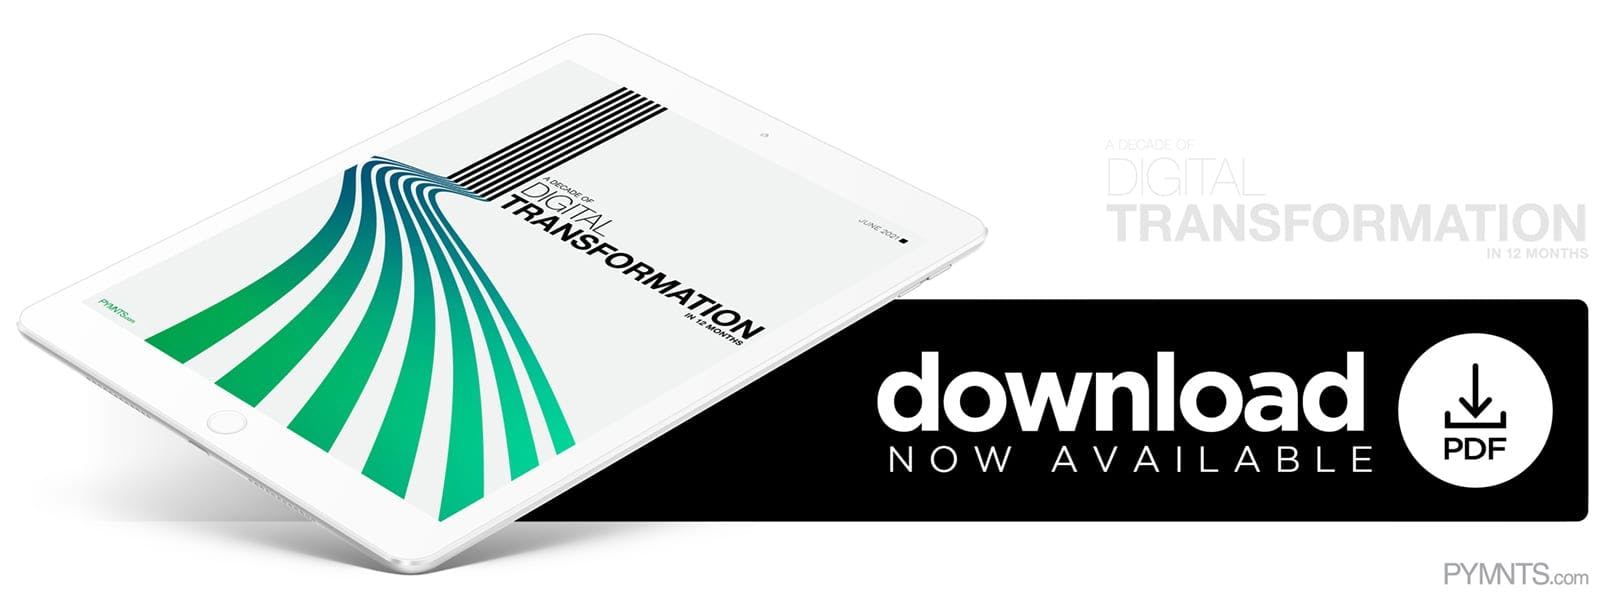 Download Button for the ebook of digital transformation